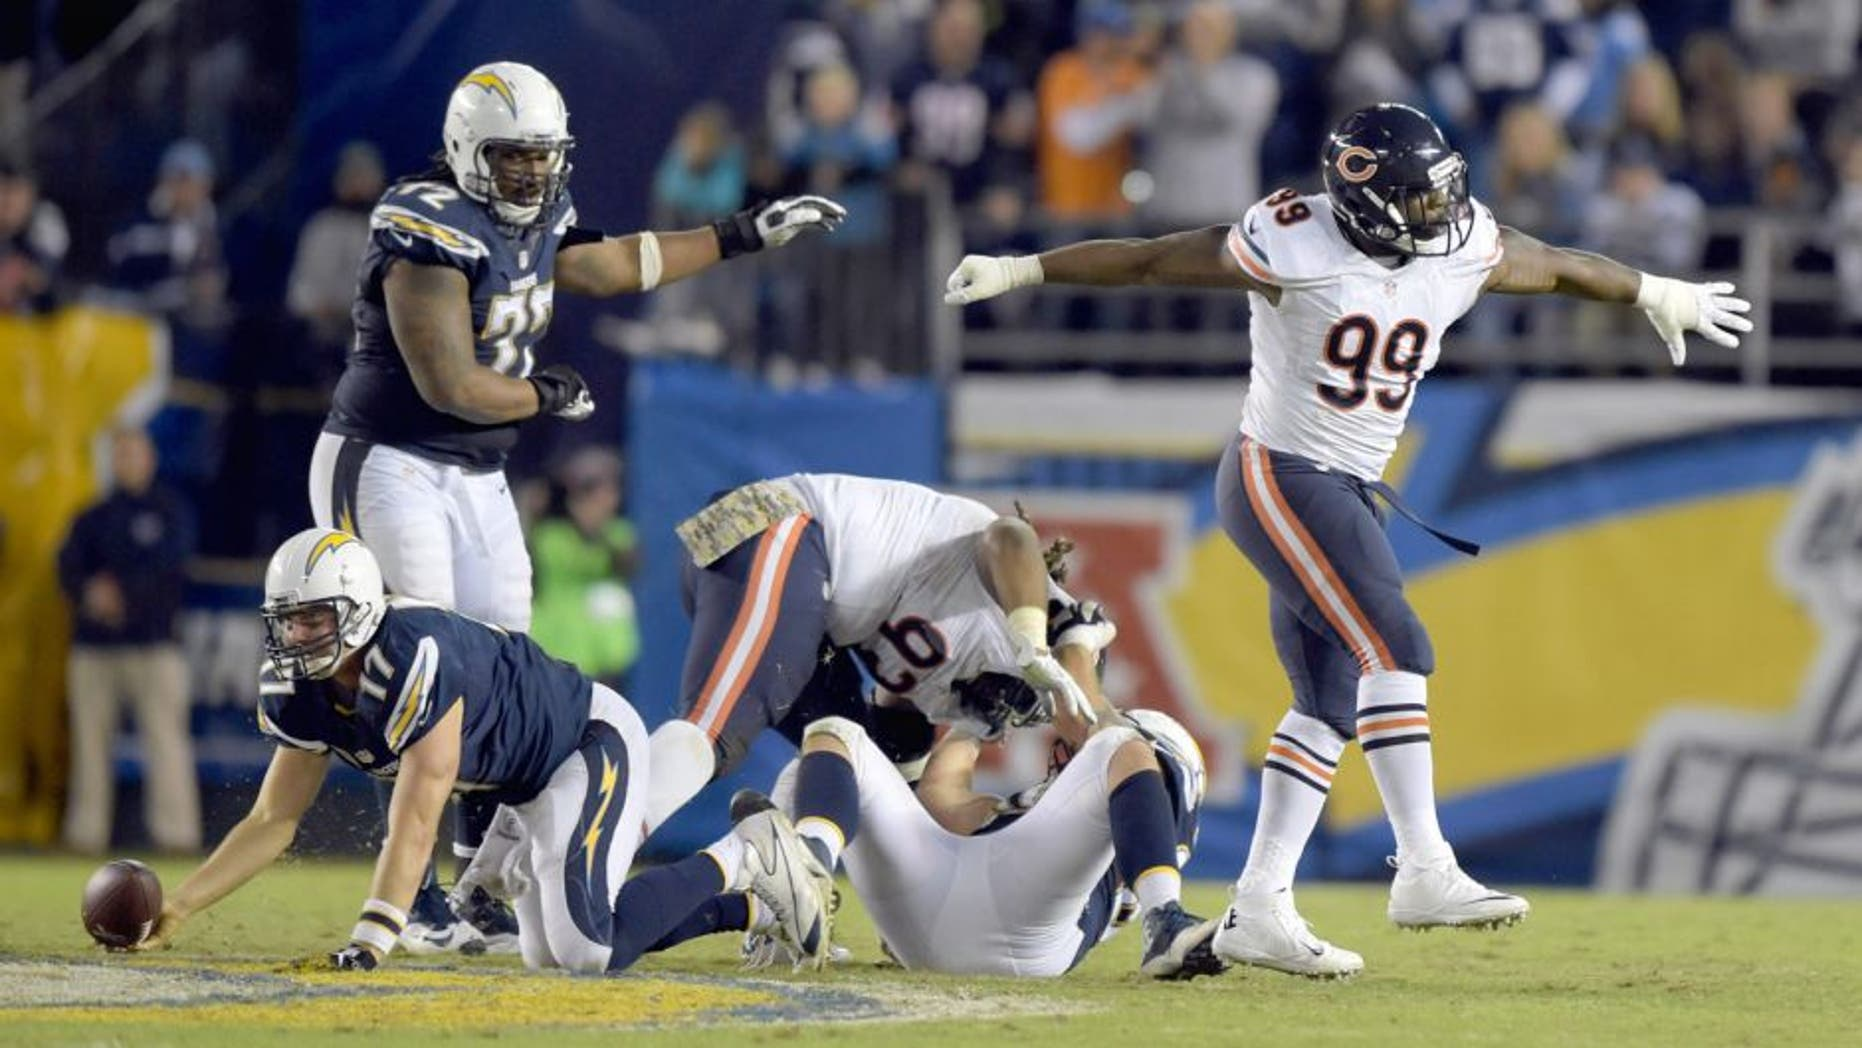 Nov 9, 2015; San Diego, CA, USA; Chicago Bears linebacker Lamarr Houston (99) celebrates after sacking San Diego Chargers quarterback Philip Rivers (17) in the fourth quarter in a NFL football game at Qualcomm Stadium. Mandatory Credit: Kirby Lee-USA TODAY Sports